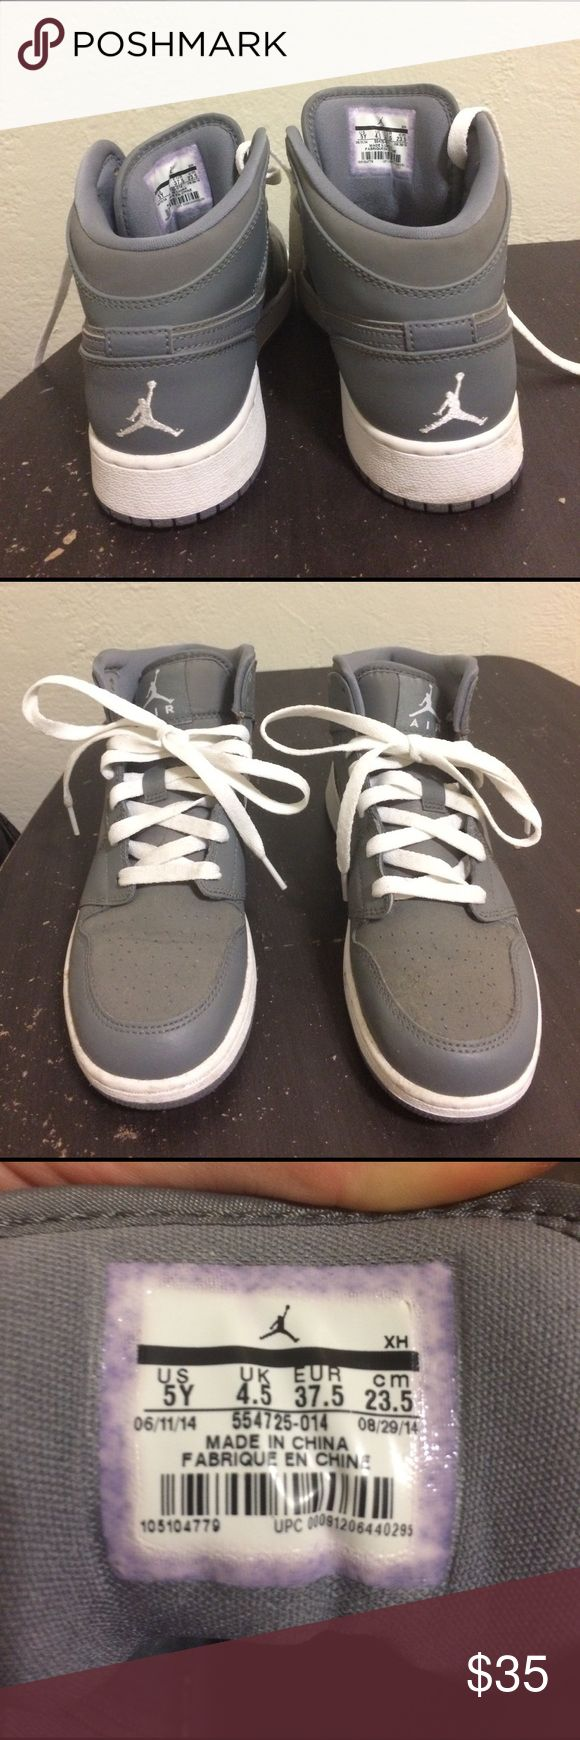 Boys Grade School (Cool Gray) AJ1 Mid No idea if they are real...but still fly as hell! U.S. 5Y. Almost new! Jordan Shoes Sneakers